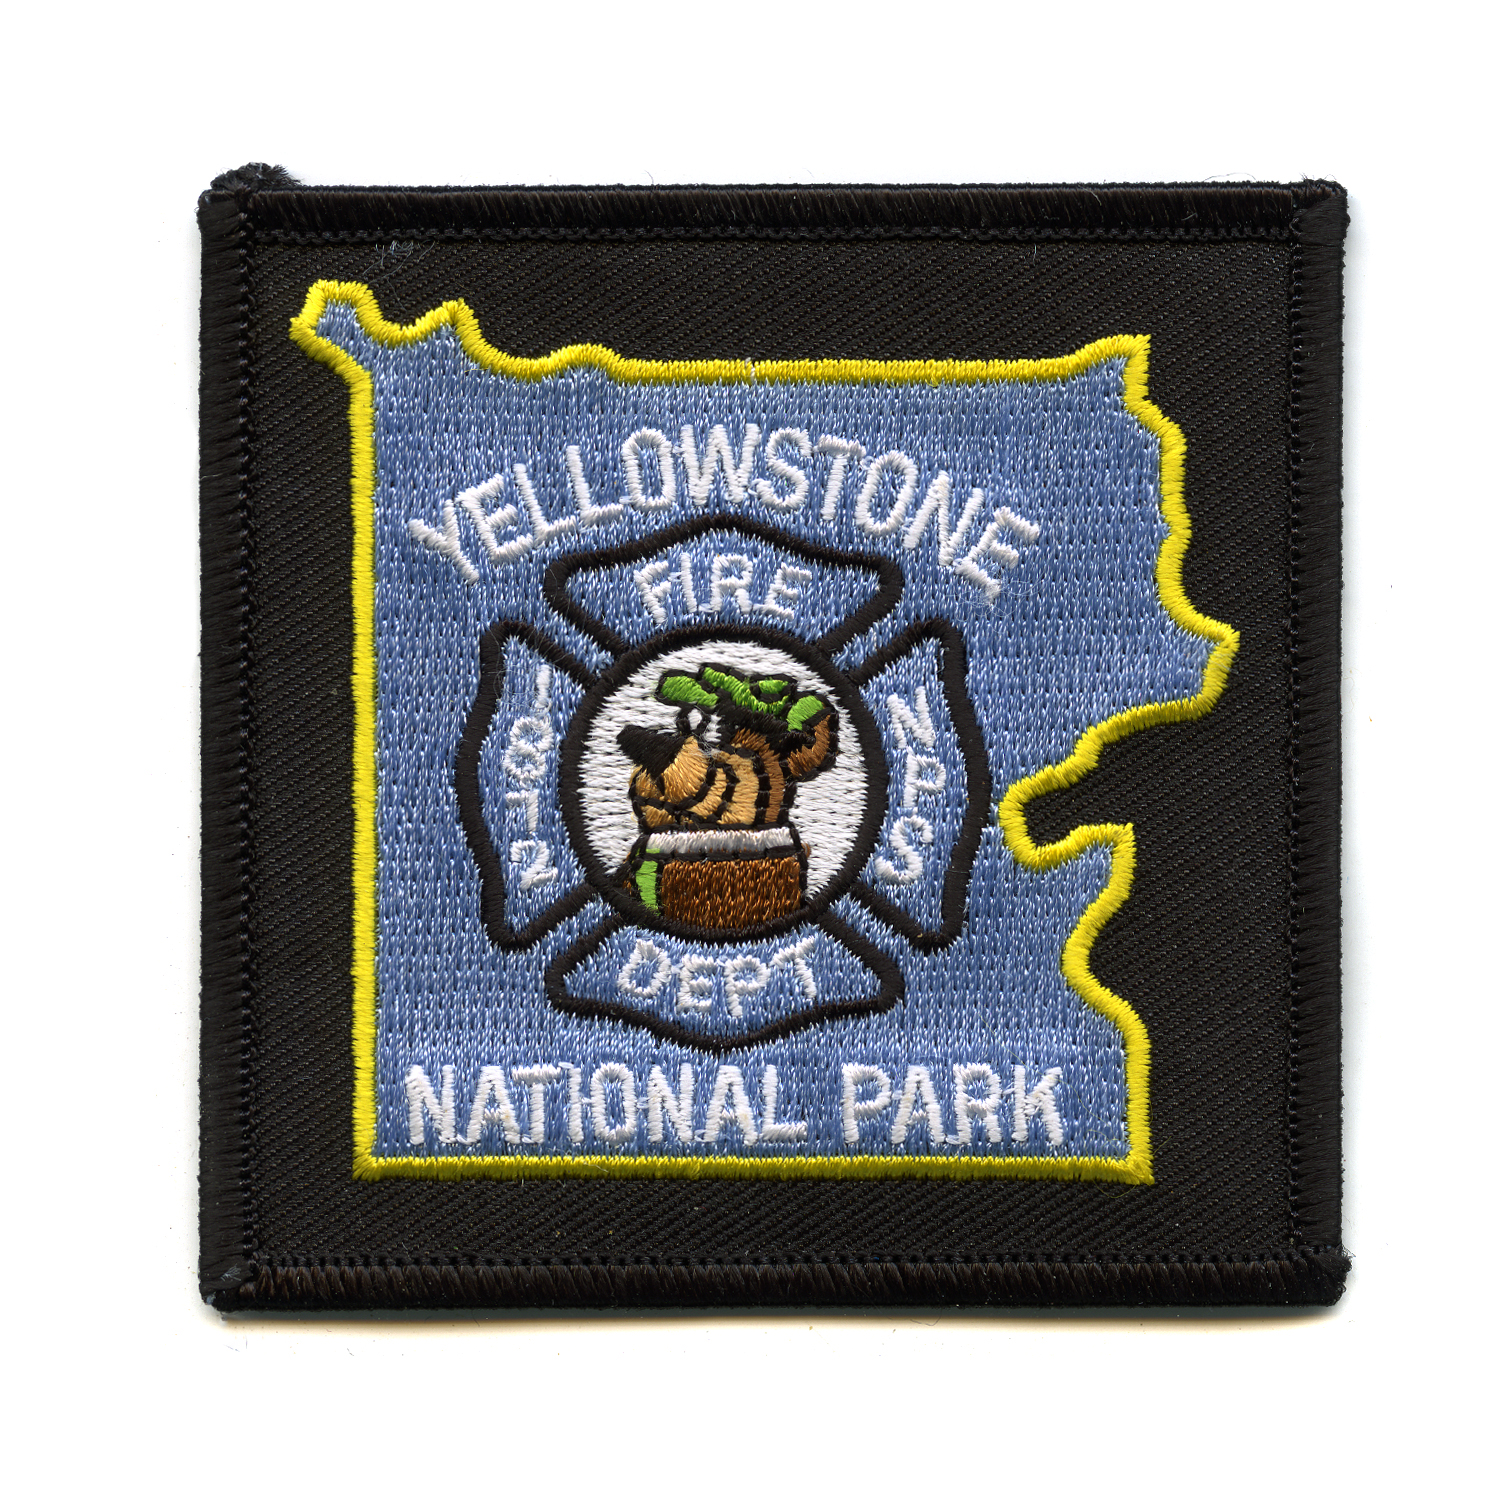 nps_patch_project_yellowstone_national_park_patch_1.jpg